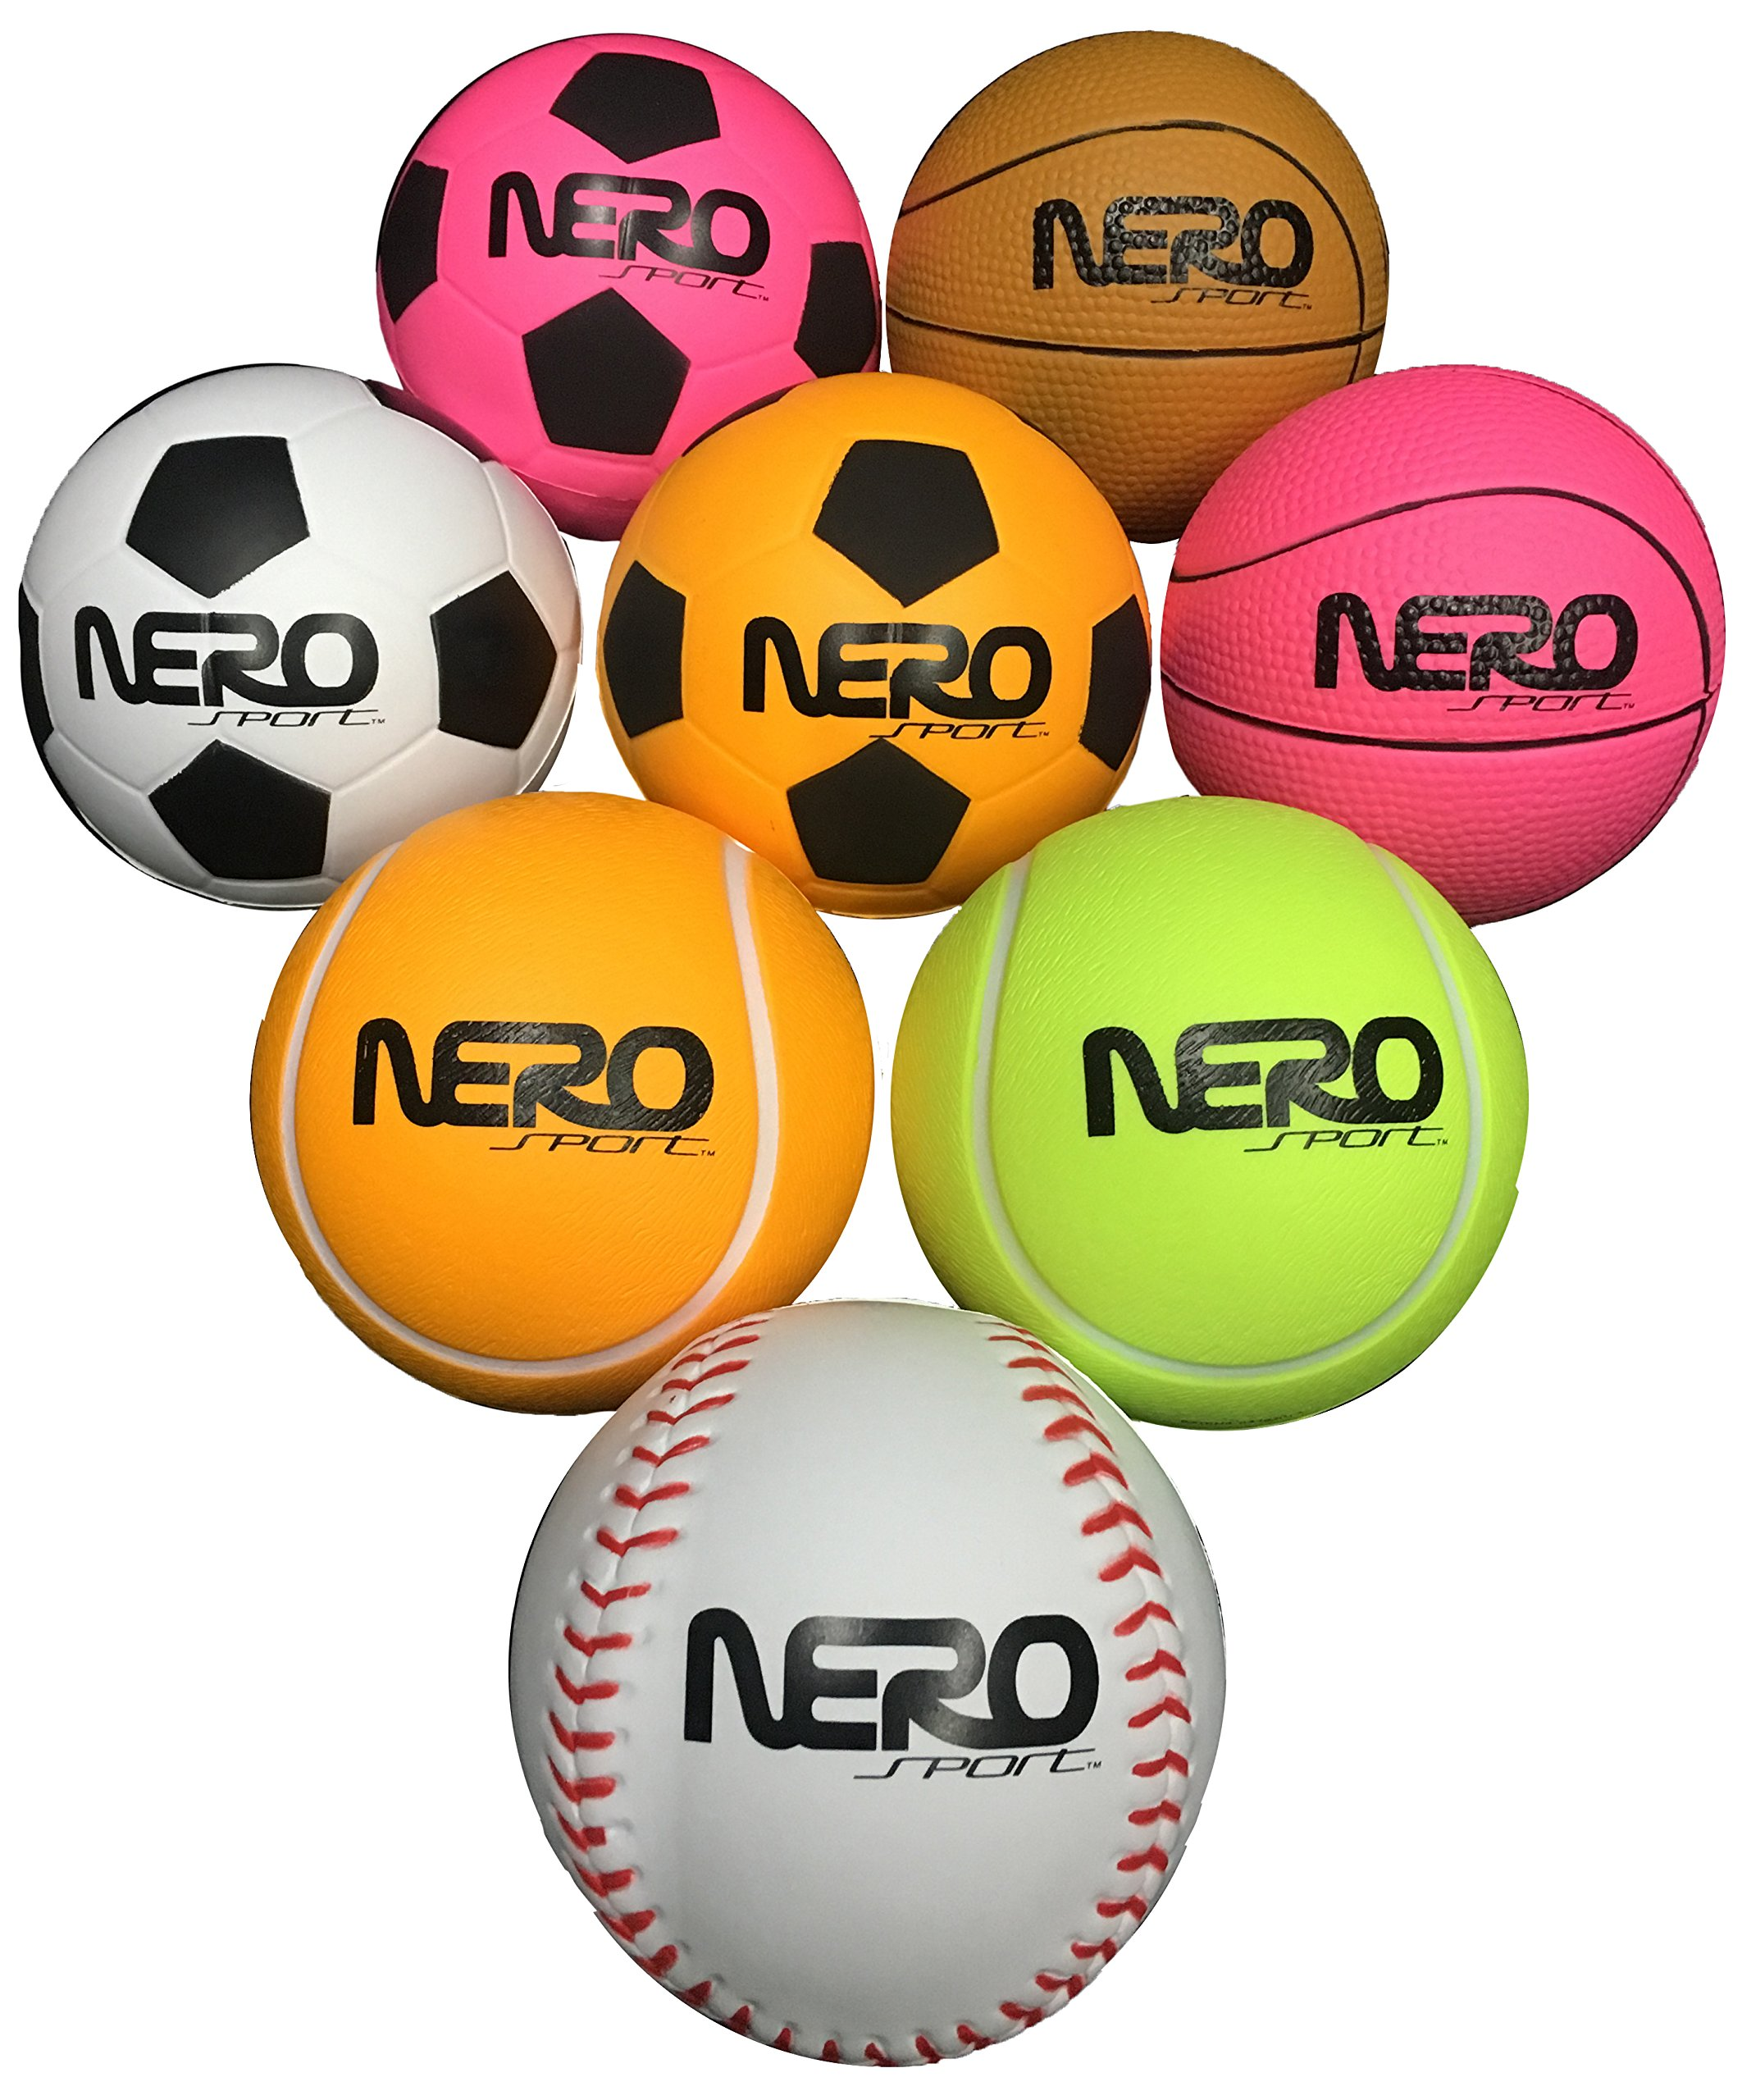 Nero NS200 High Bounce Rubber Toy Ball 3.5 inch Different Styles Tennis Soccer And Basketball Great For the Streets Park Back Yard Agility Ball Bulk Price Birthdays (6pckmix)